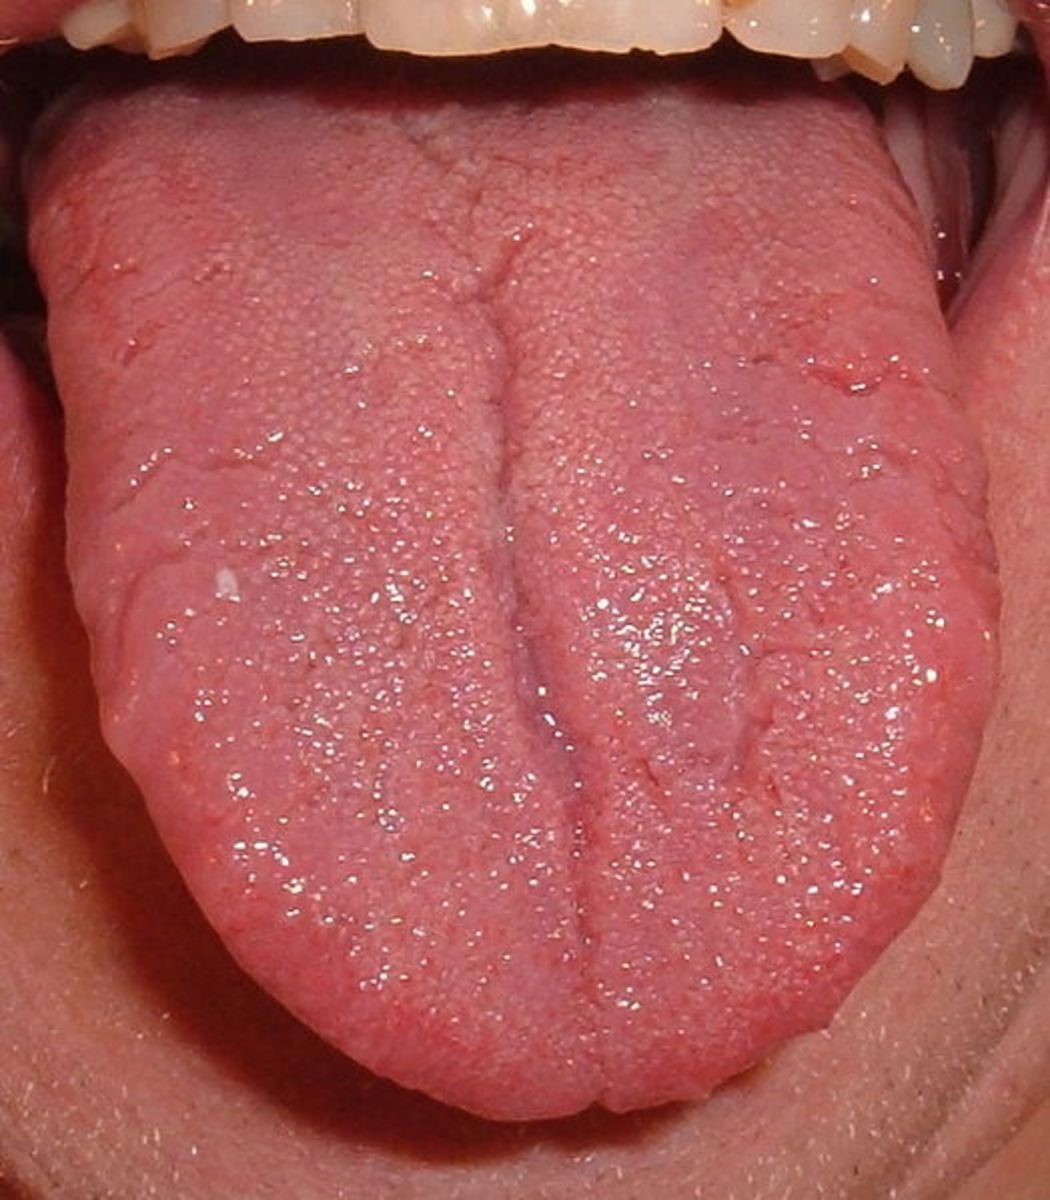 An image of a human tongue.